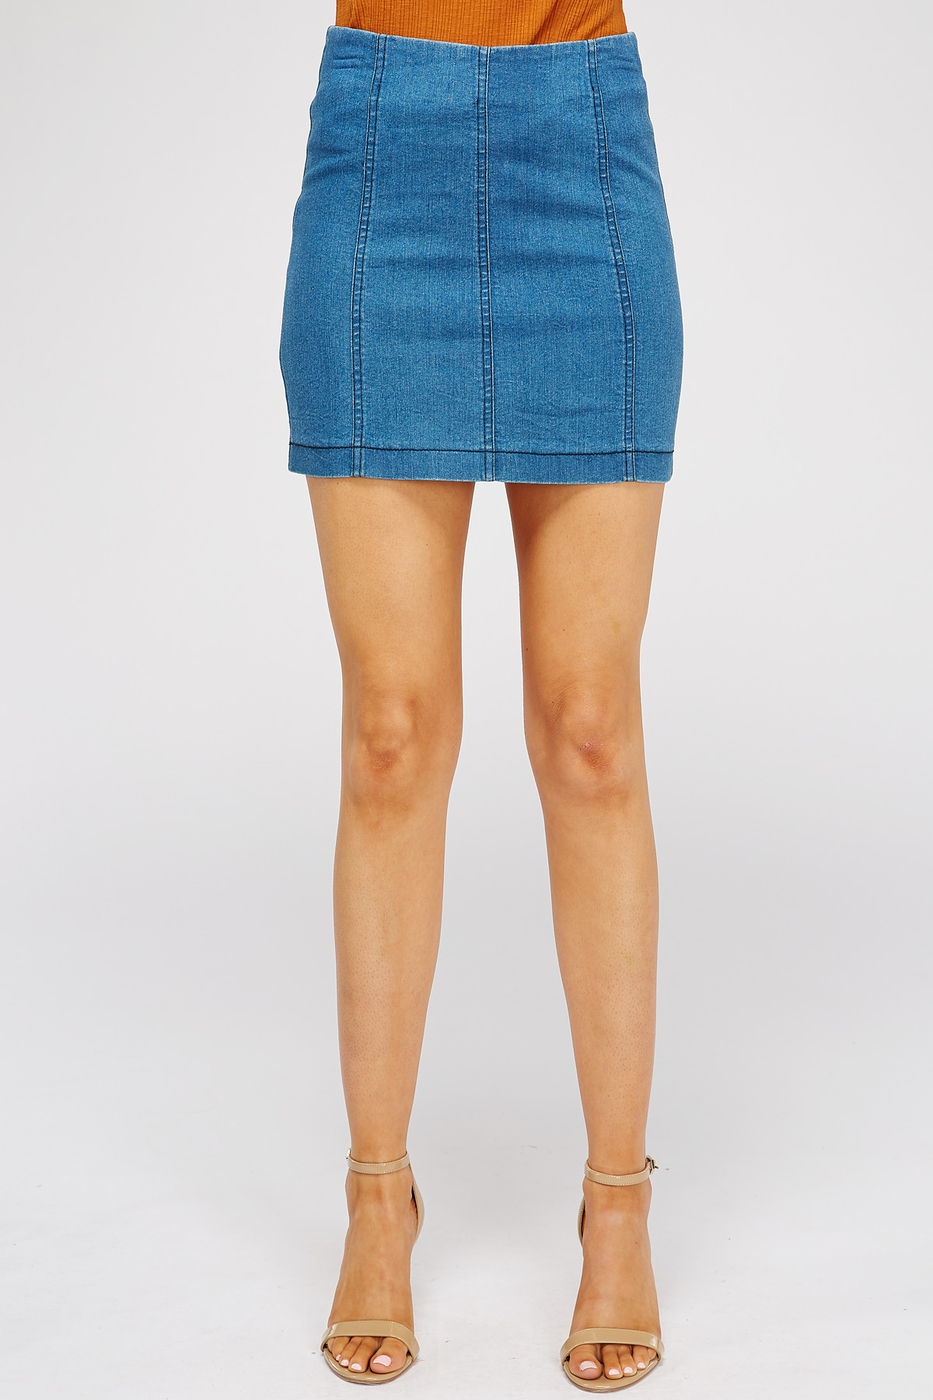 DENIM MINI SKIRT WITH BACK ZIPPER - orangeshine.com